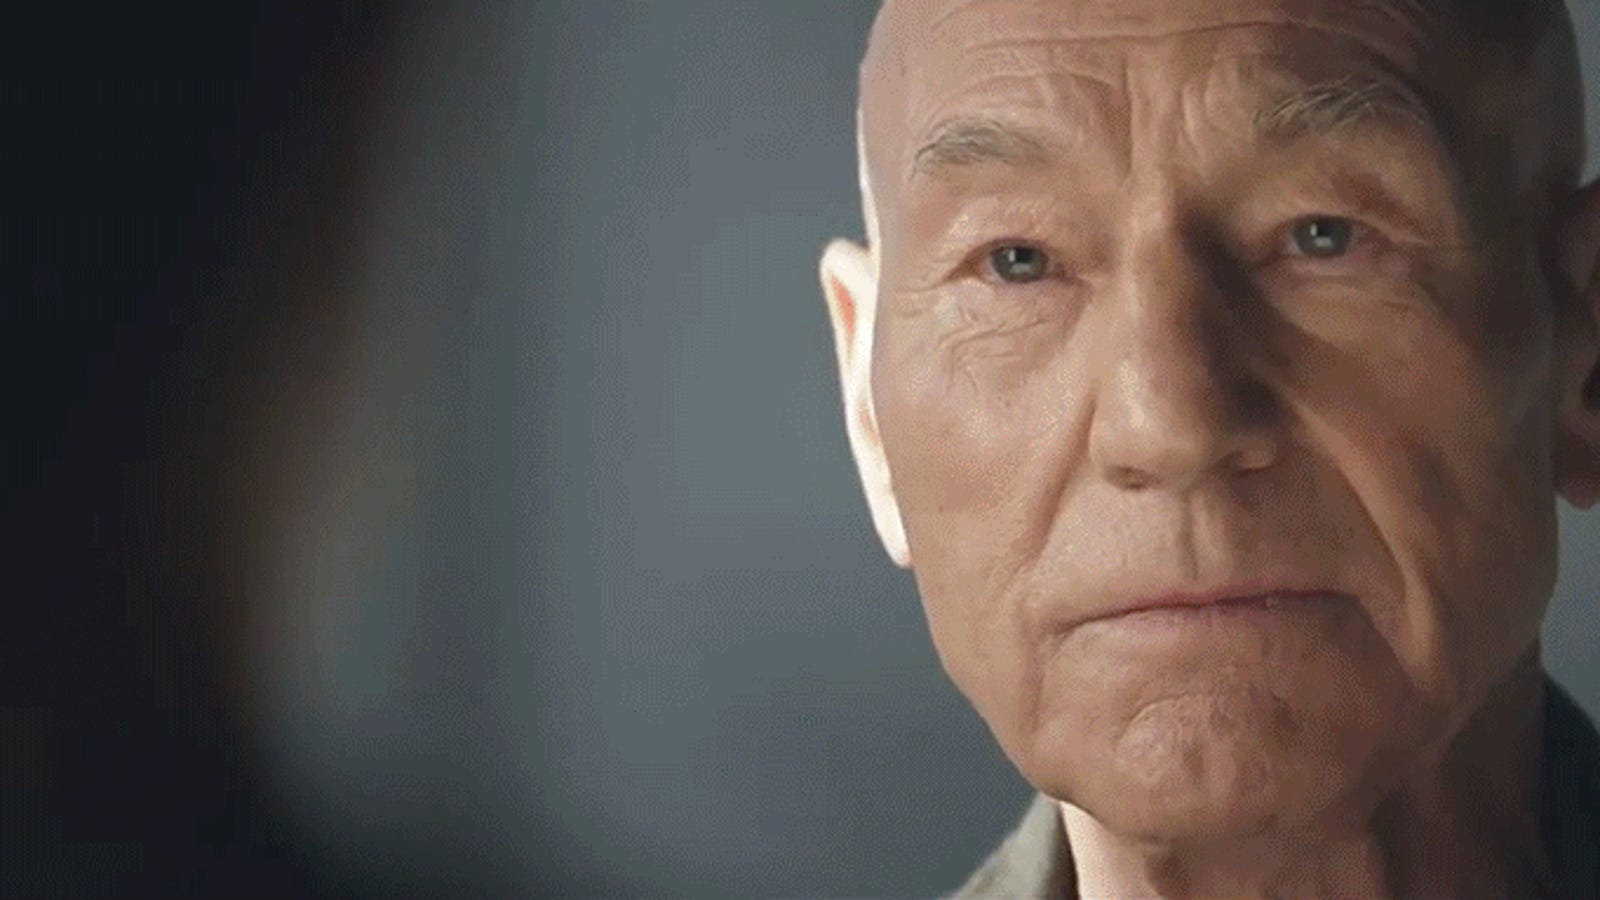 Star Trek: Picard Trailer Breakdown: Borg, Data, & Romulans